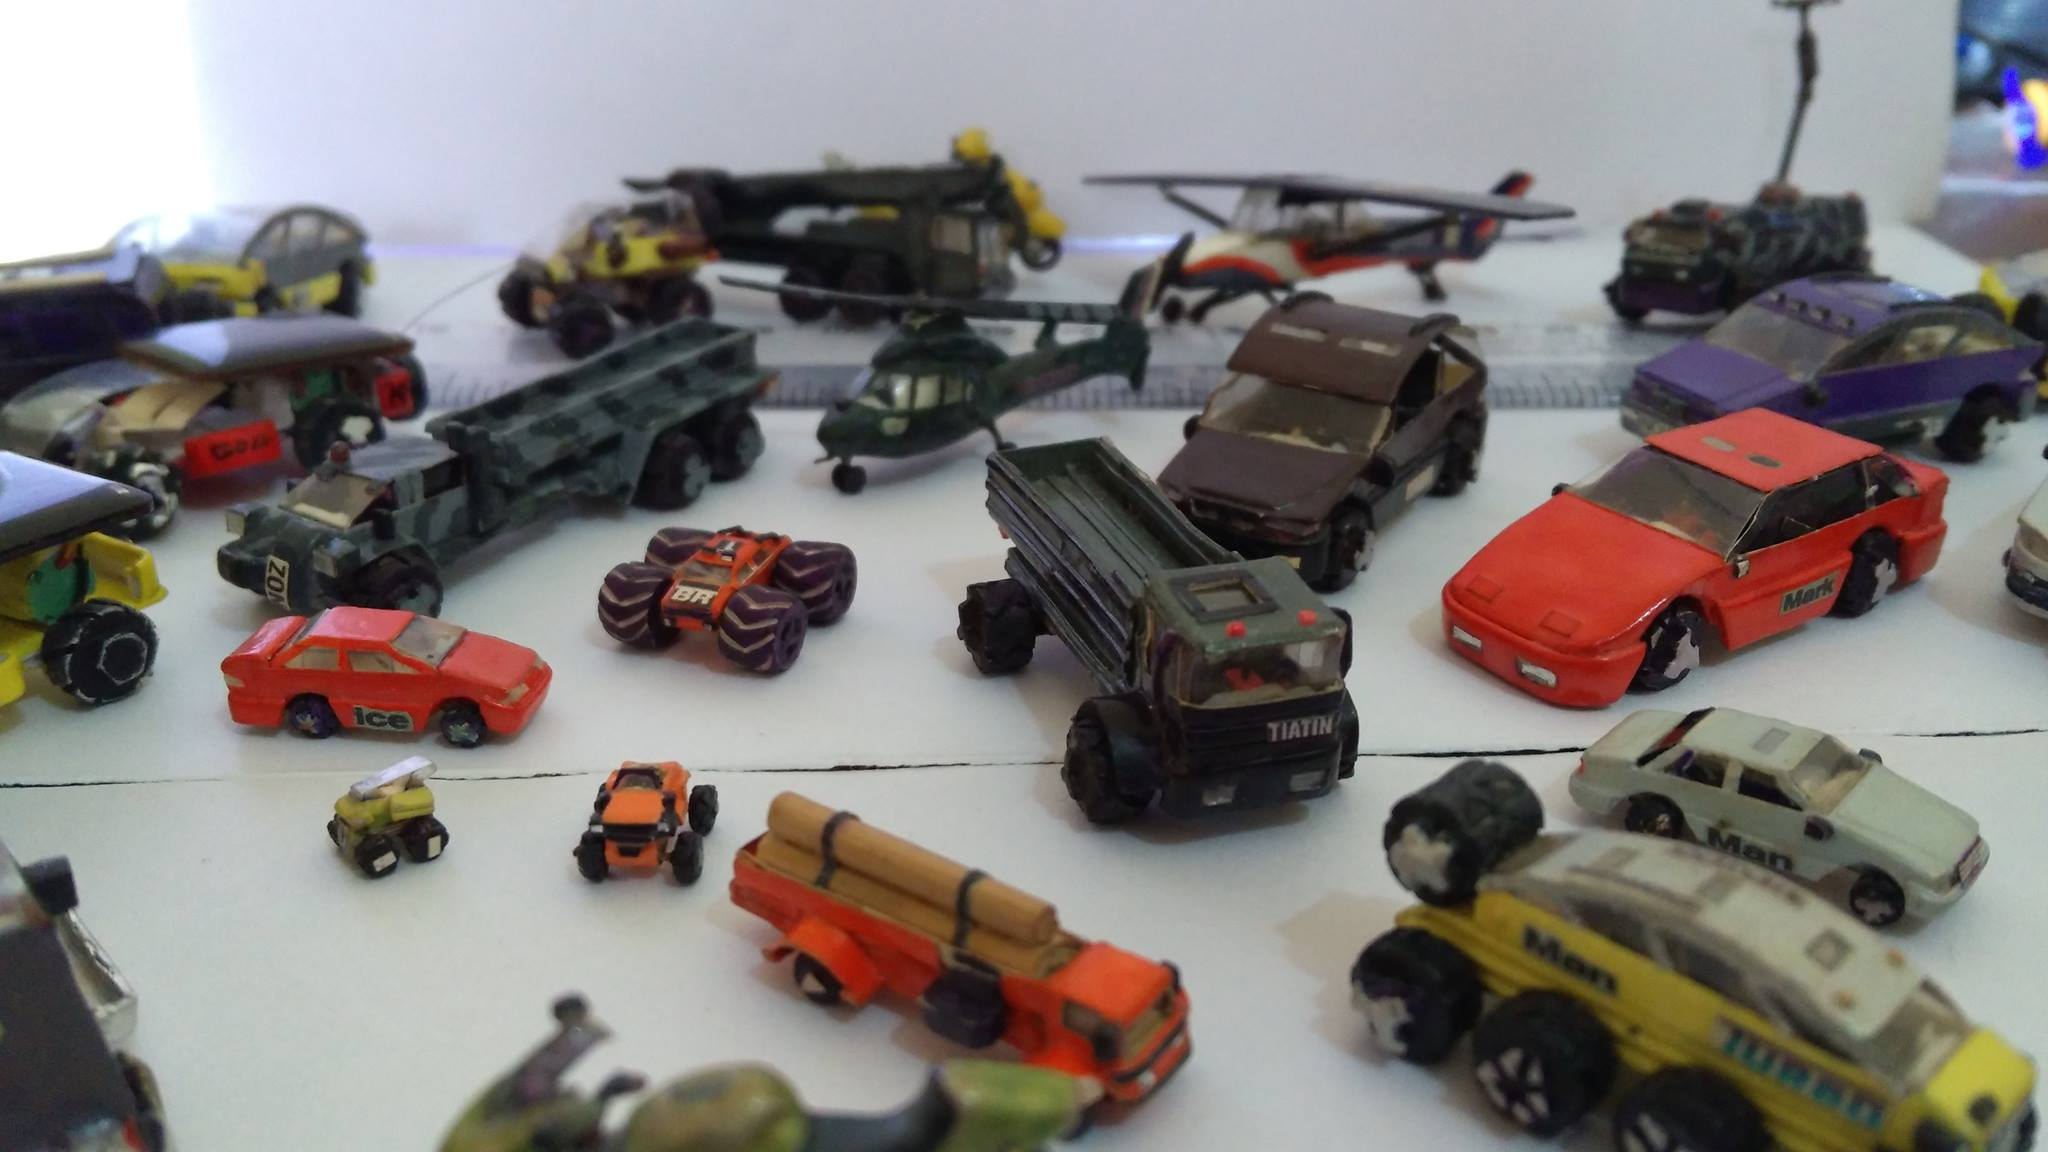 Miniature trucks and toys